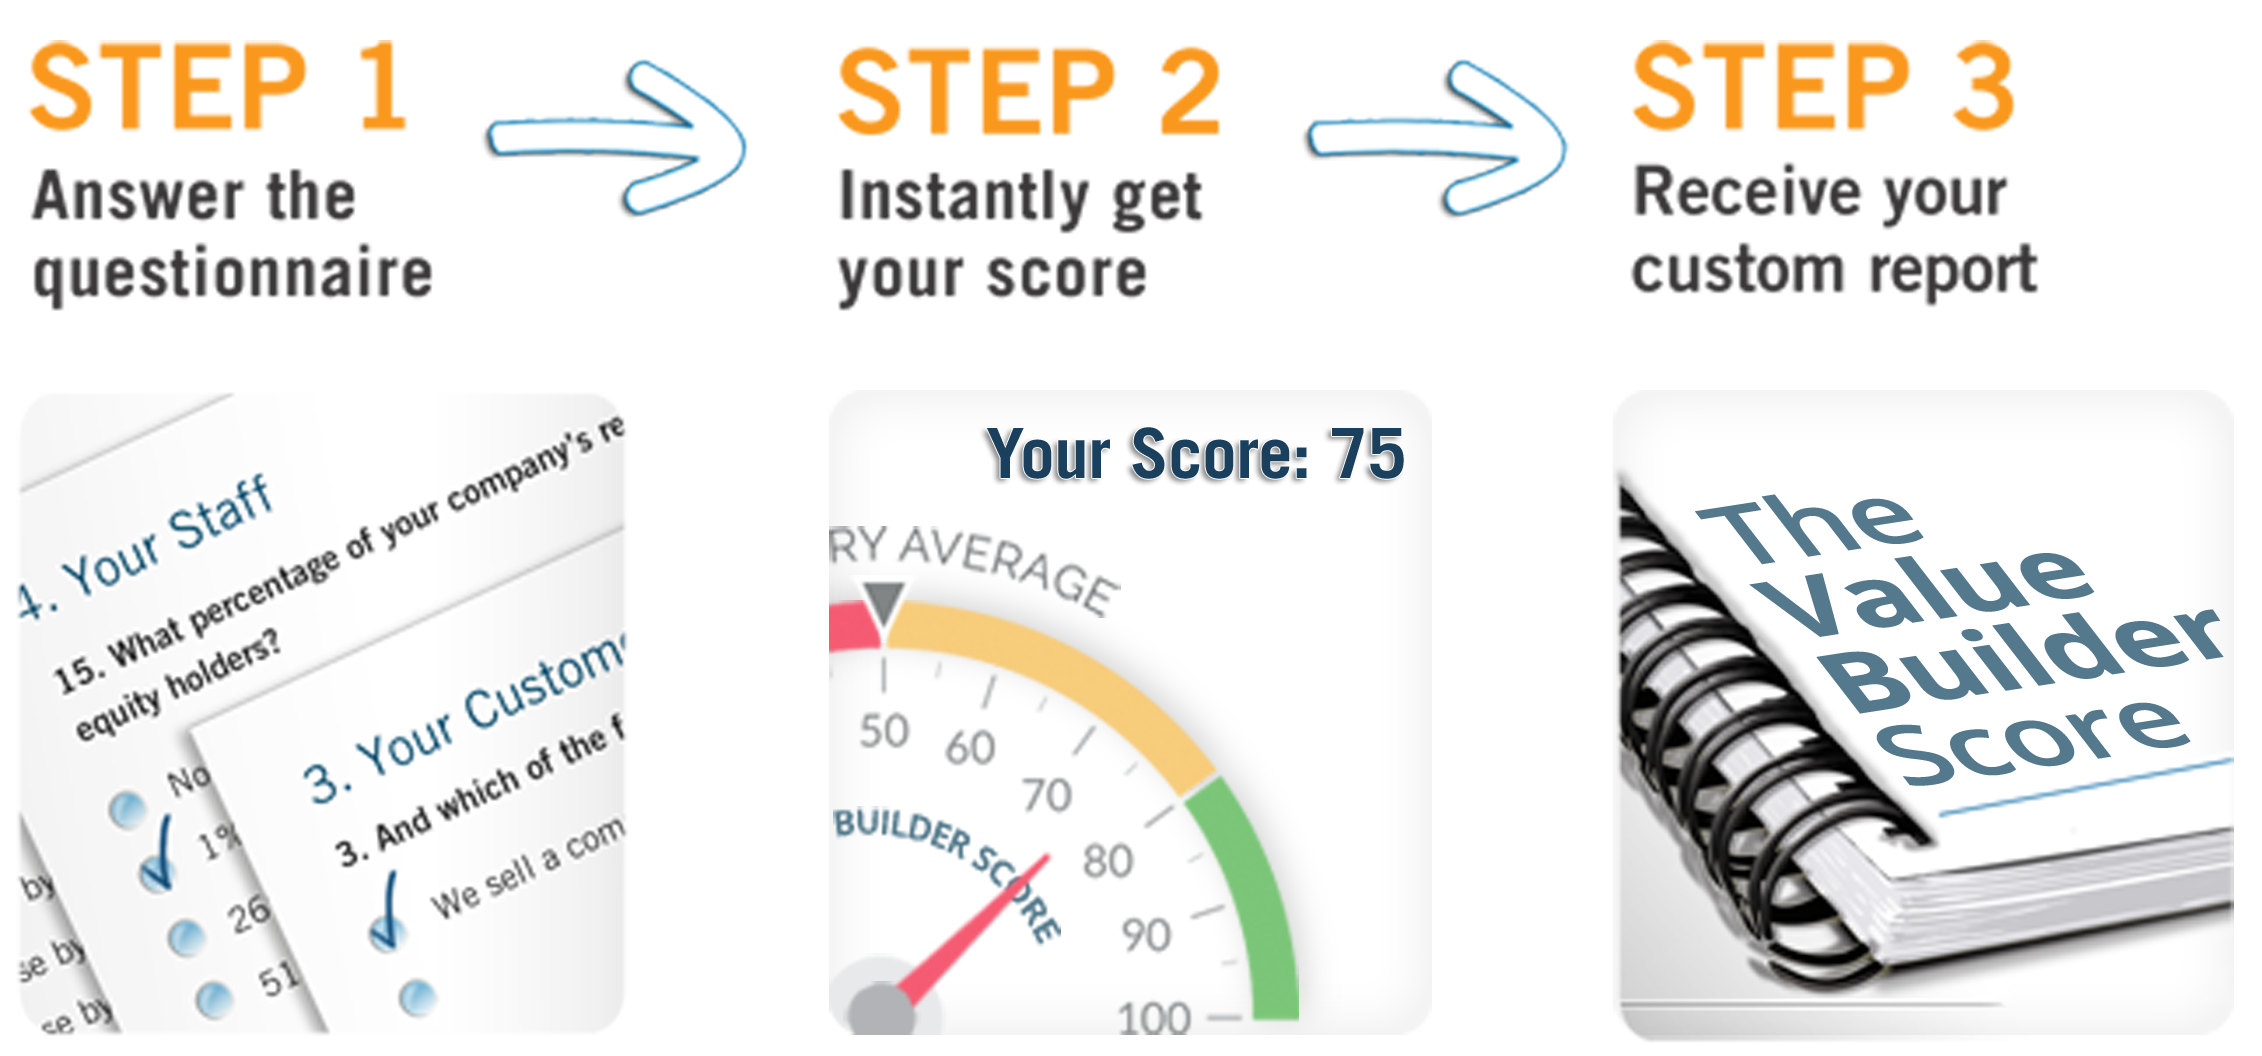 Three Steps to Get Your Value Builder Score